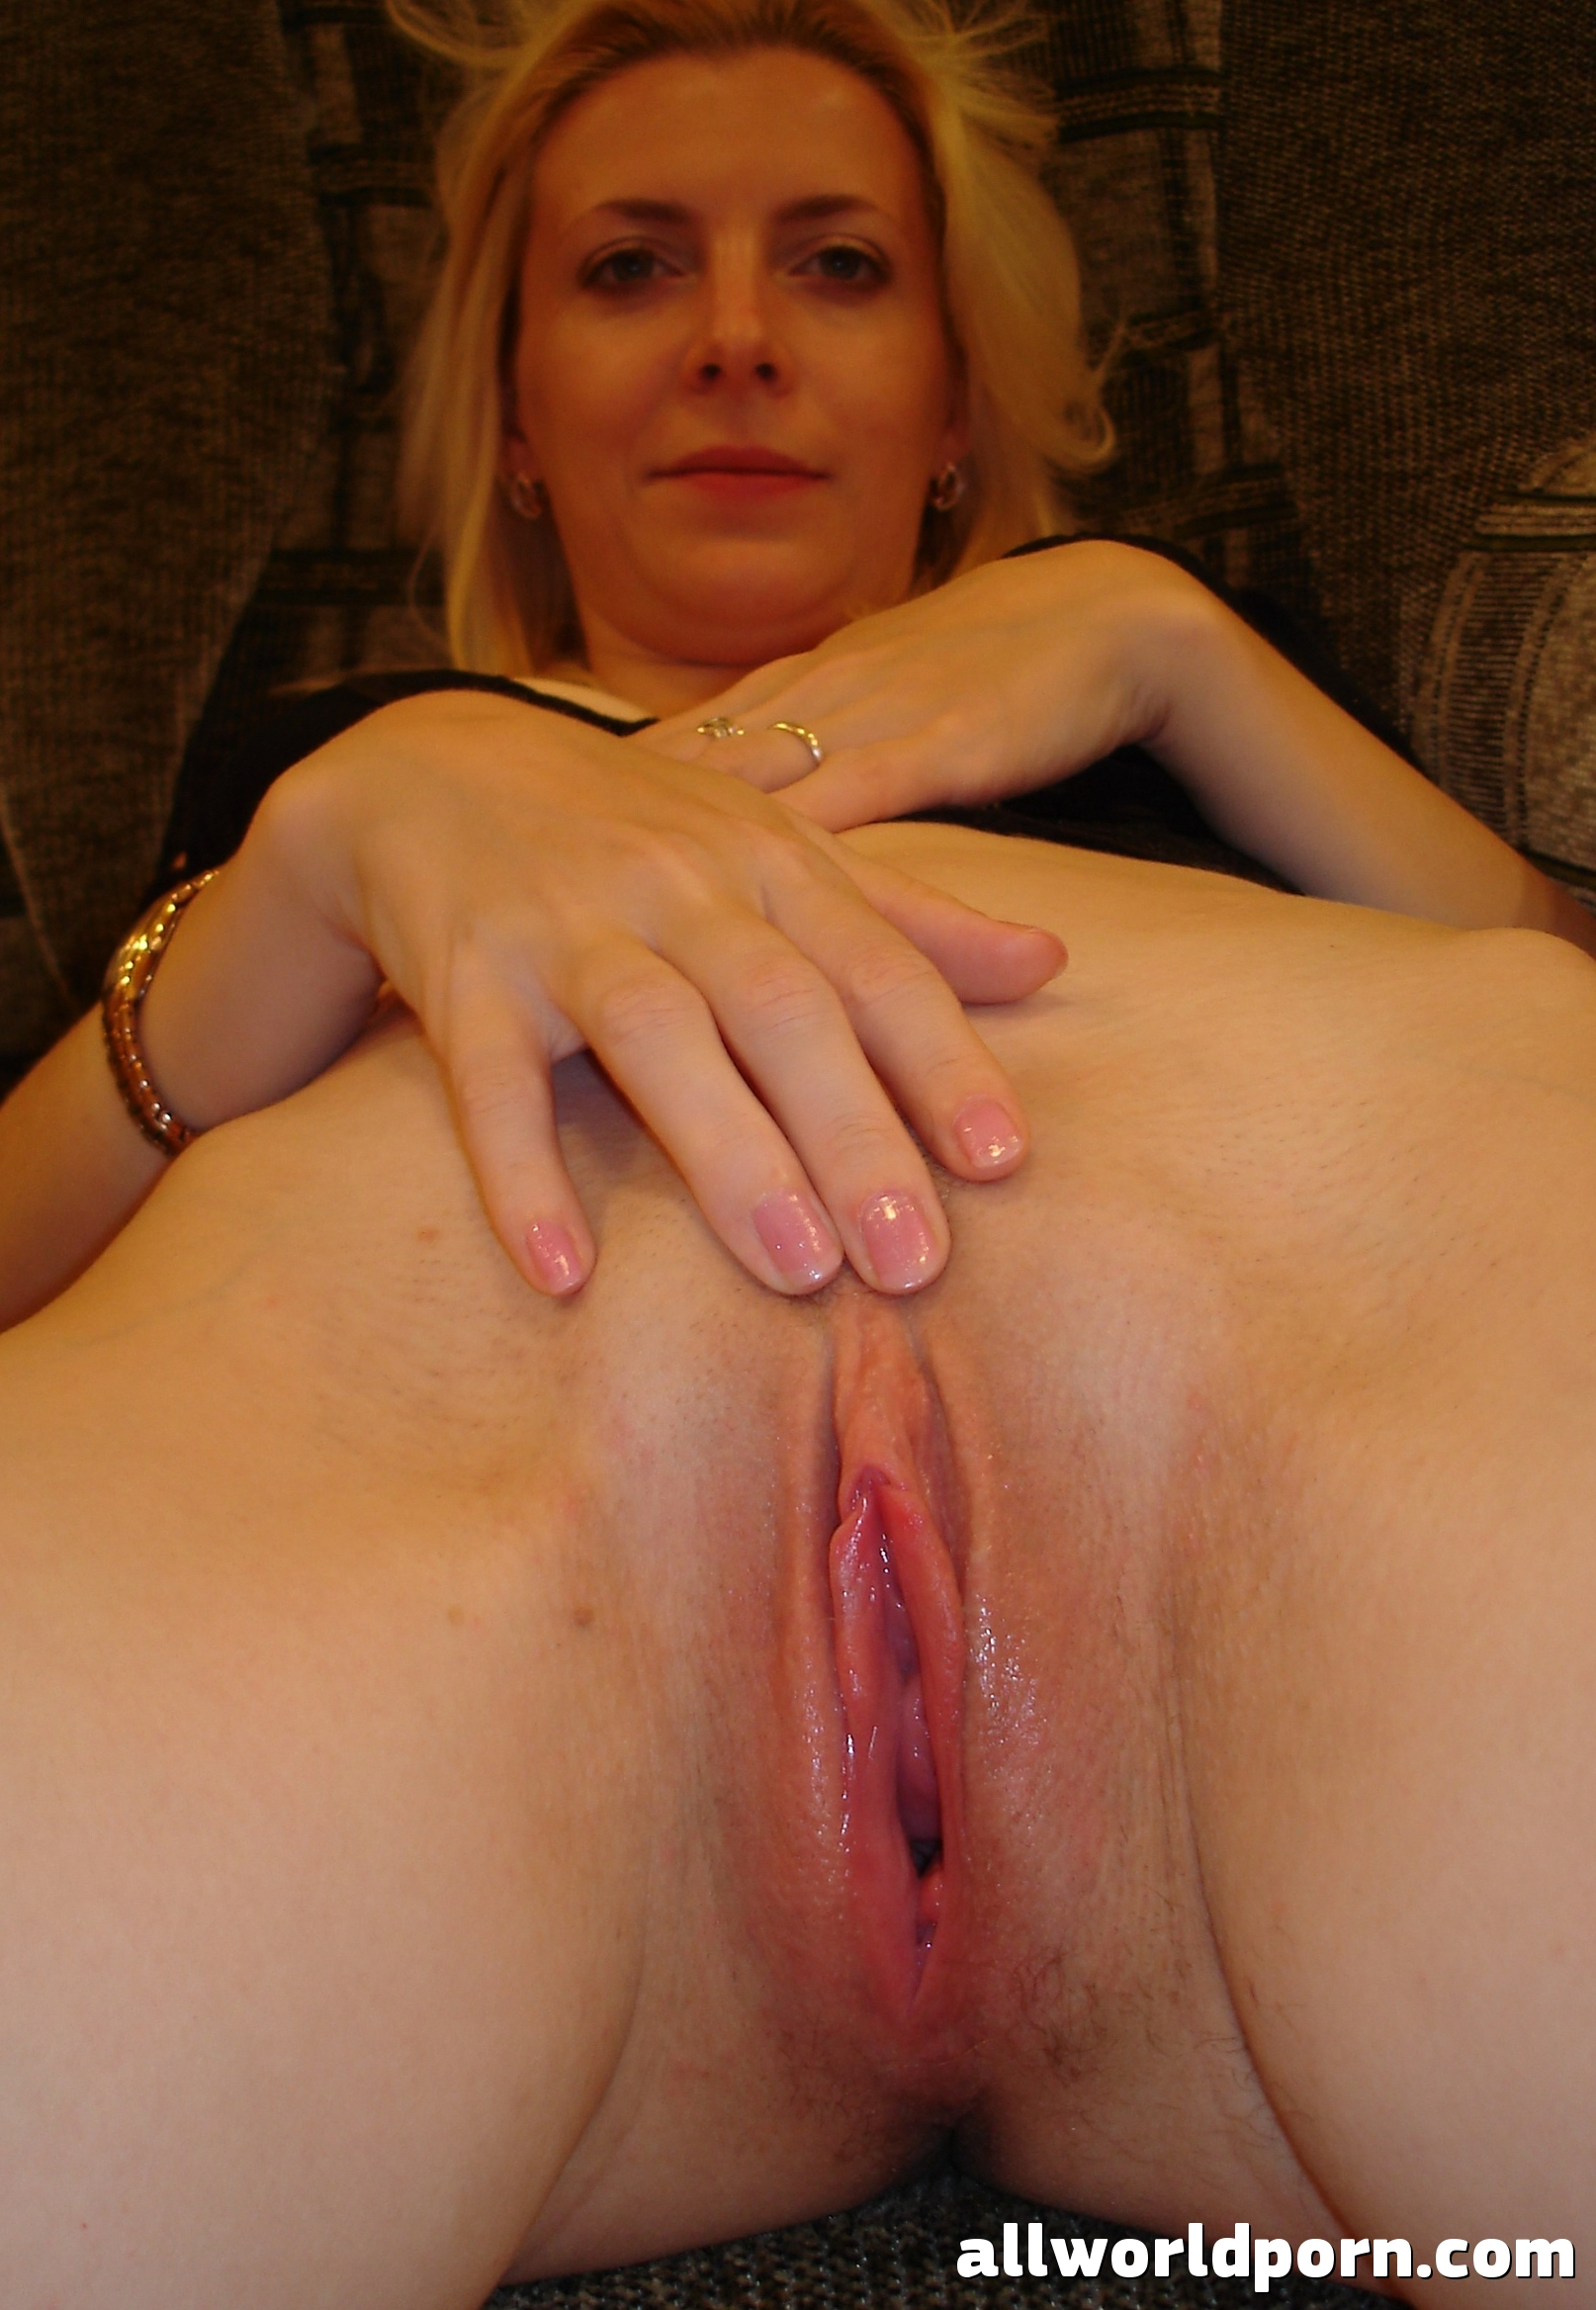 phrase, matchless))), pleasant sexy whore handjob dick and pissing really. All